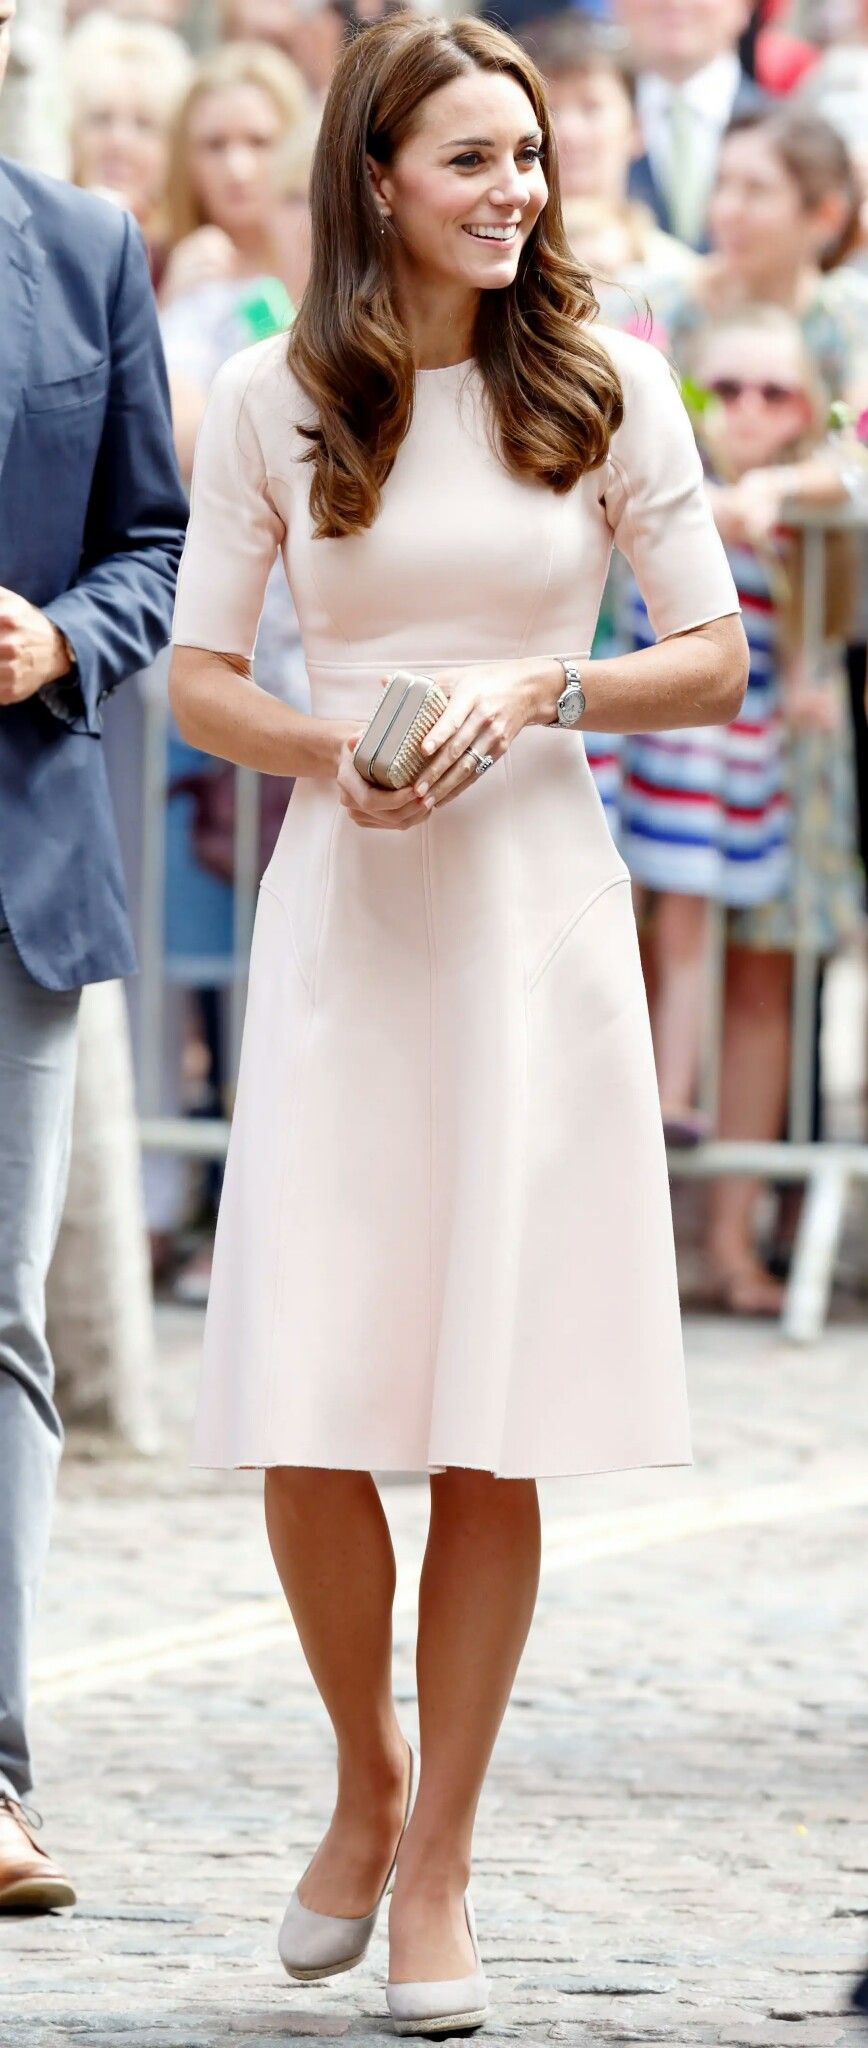 01c13e39b Pure elegance | First Ladies in 2019 | Kate middleton outfits, Kate ...